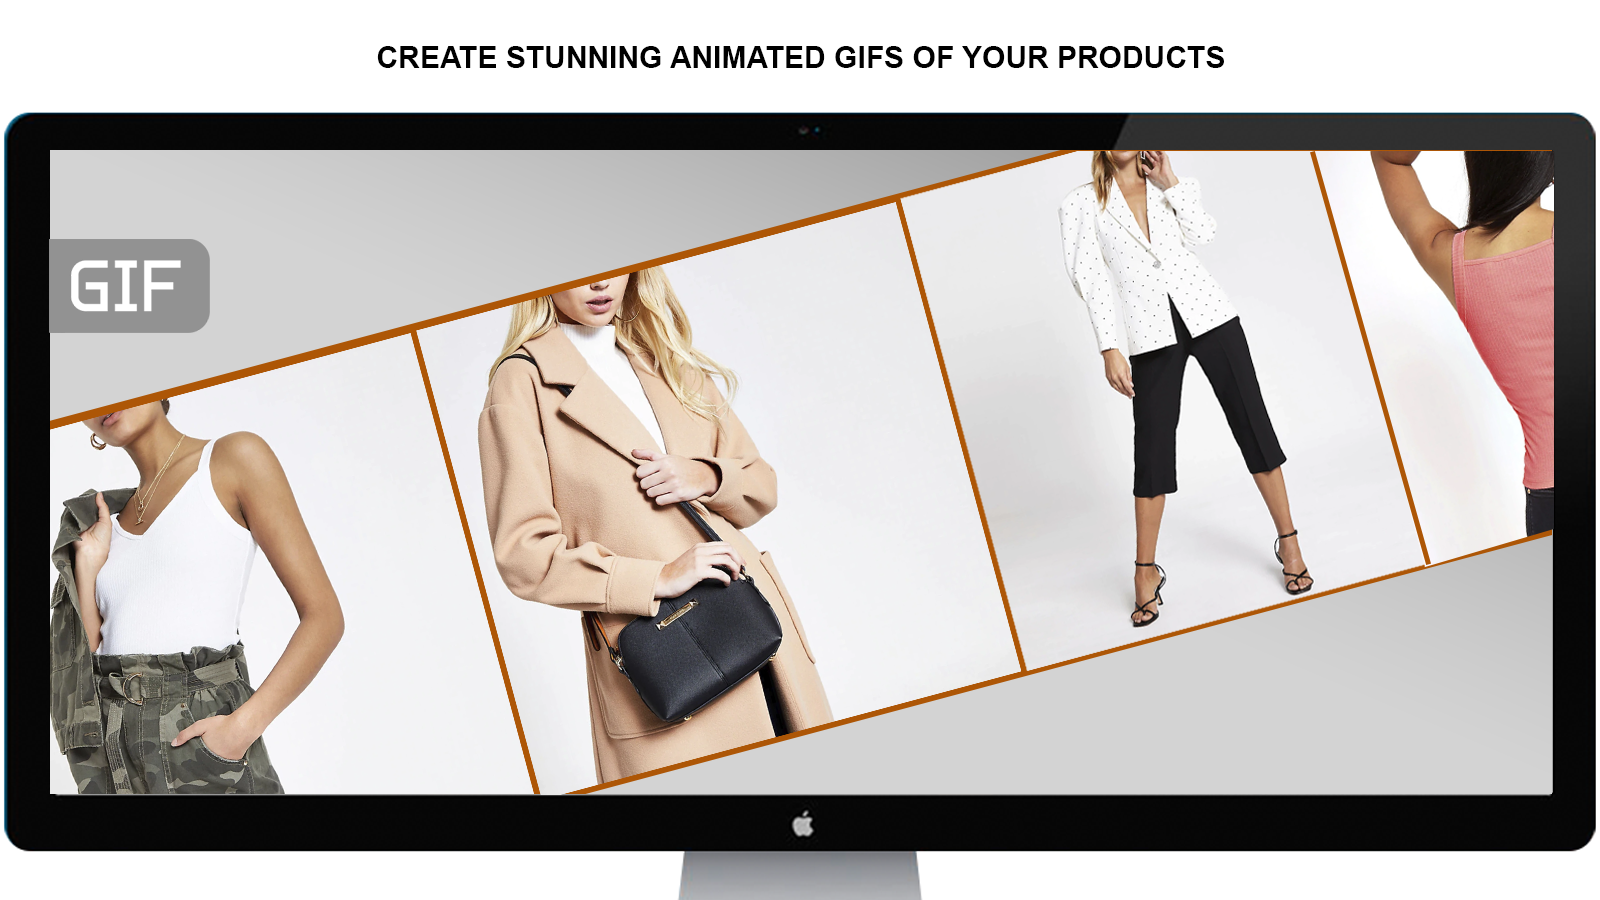 Create animated GIFs of your products